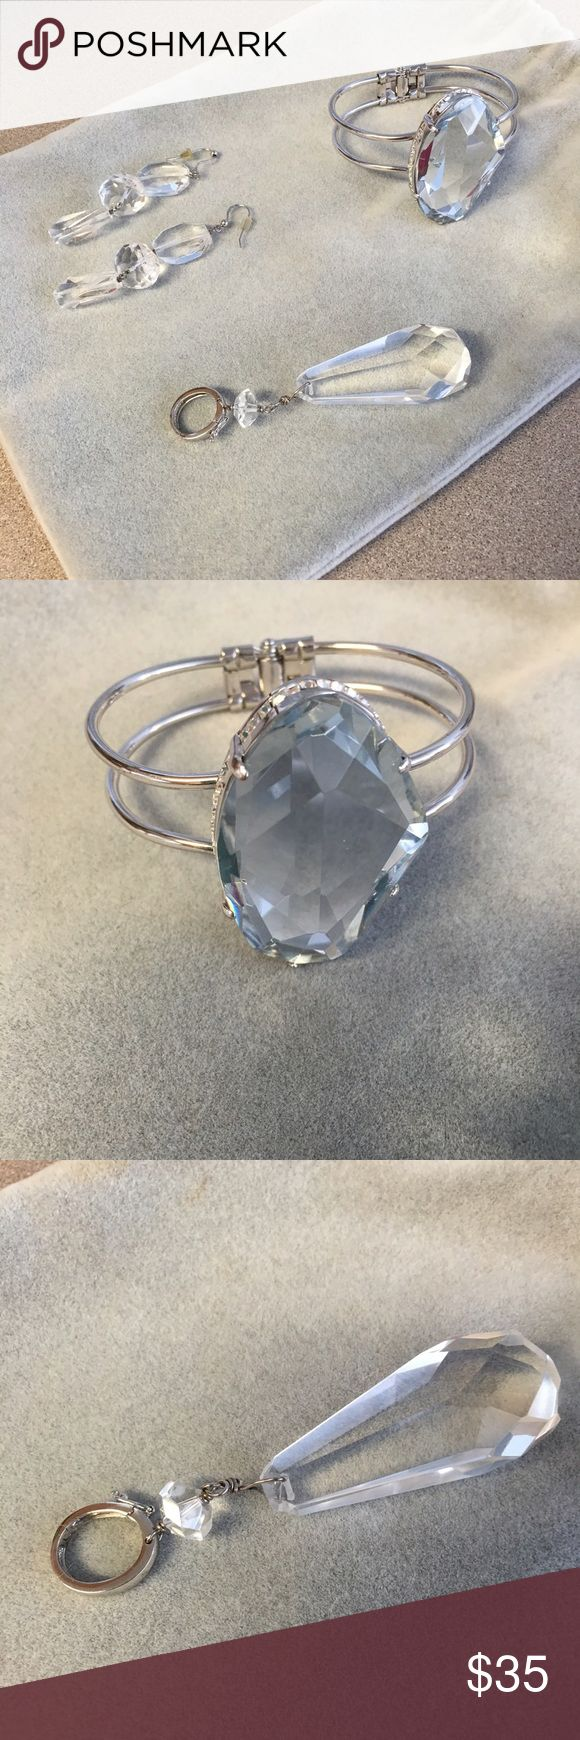 Quartz Bundle from home shopping Three pieces from home shopping-the earrings and pendant are Deb Guyot from HSN and is Quartz Look her up to see some comparable pieces I thought the bracelet was her also but it is stamped with a V on the back It is also Quartz and very sparkly in the way it's cut It was purchased in a home shopping channel as well These are beautiful pieces in great condition I just don't wear them Cats in home Deb Guyot Jewelry Bracelets